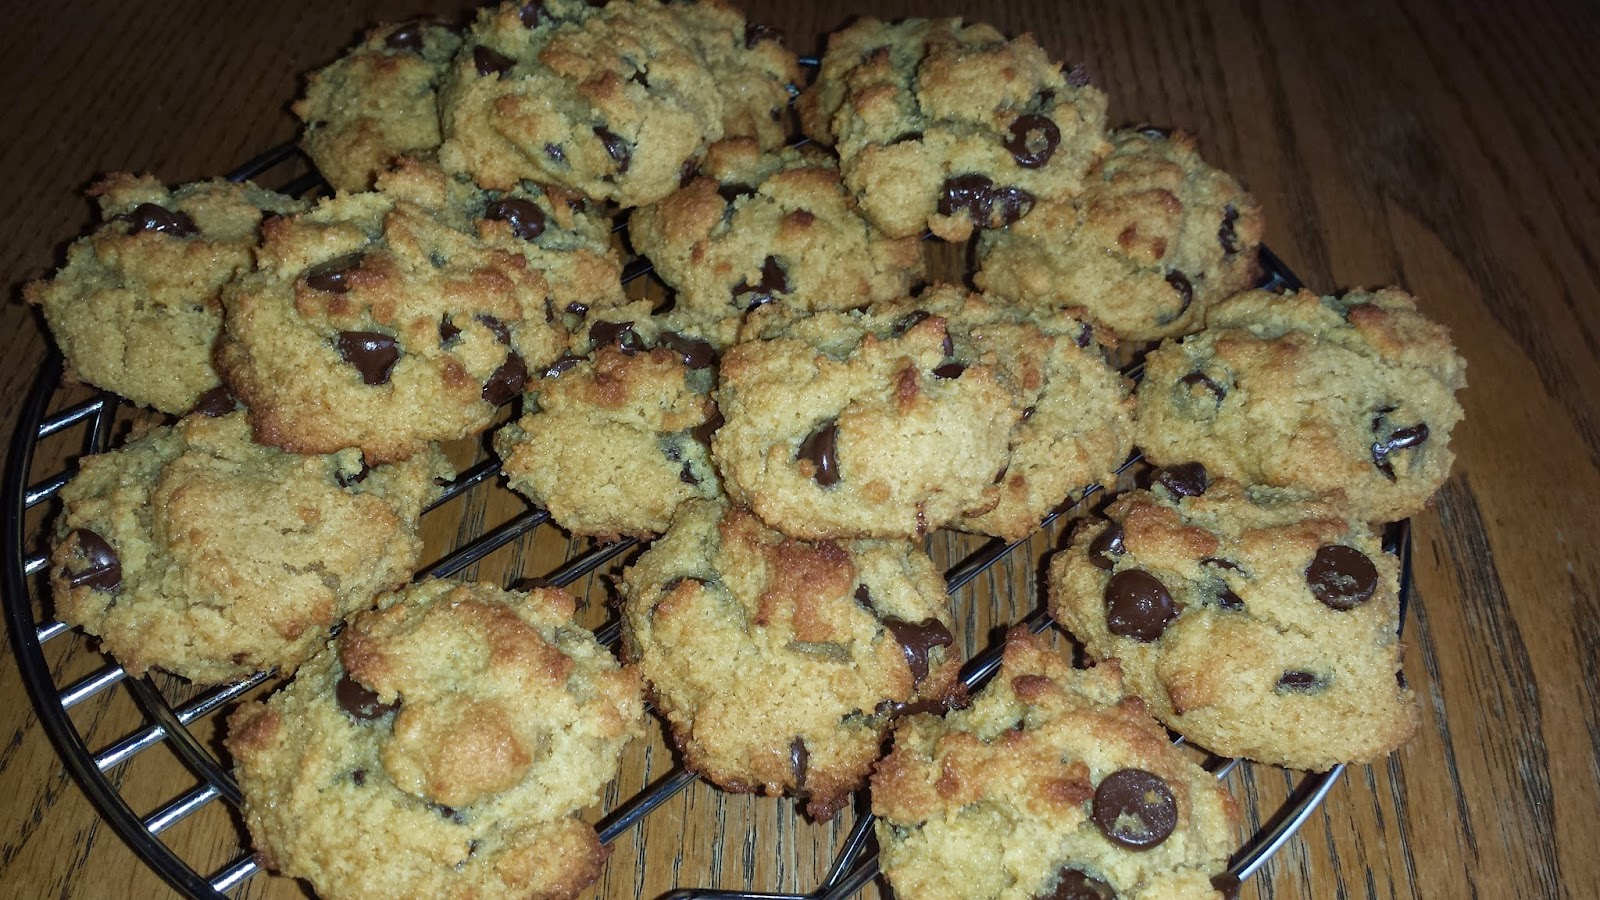 Healthy Life Lessons: Passover Chocolate Chip Cookies (Gluten-Free)